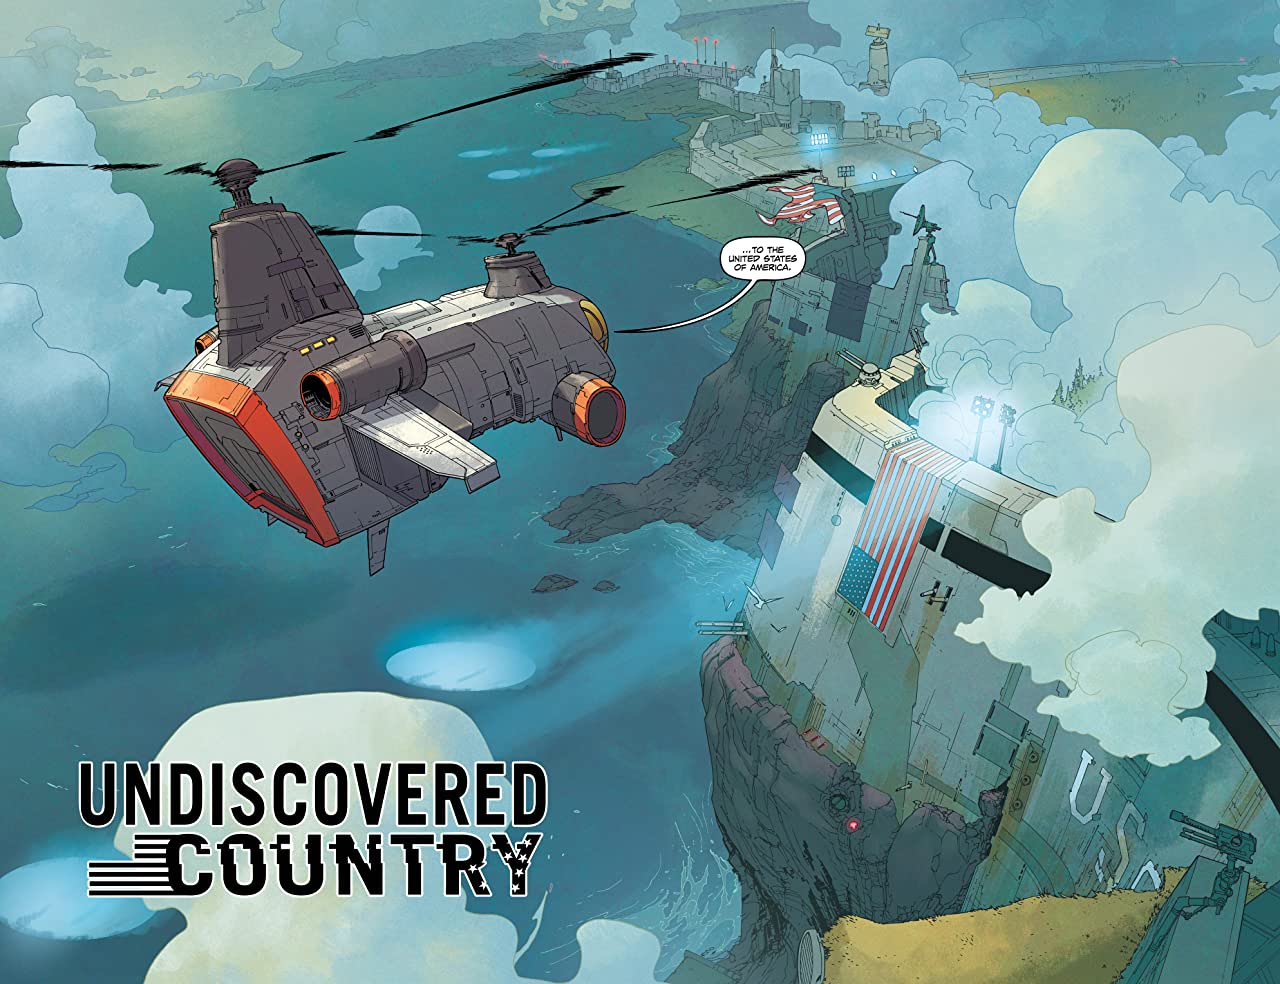 Undiscovered Country #1